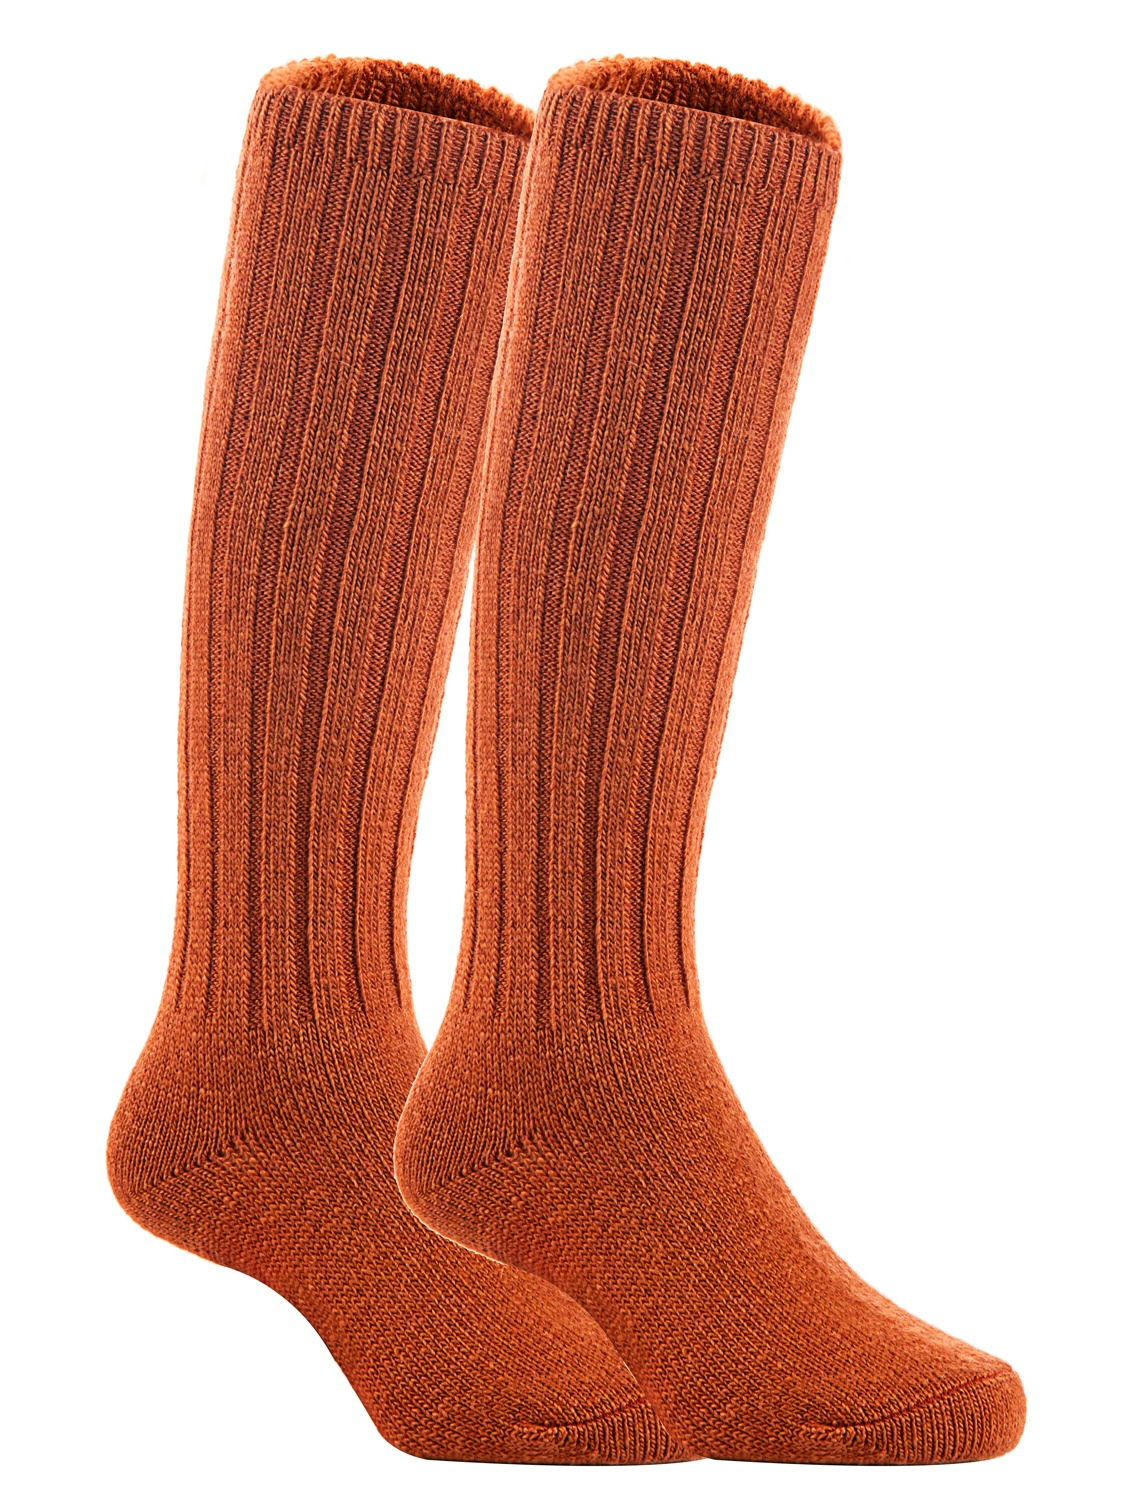 Lian LifeStyle Unisex Baby Children 3 Pairs Knee High Wool Blend Boot Socks Size 2-4Y  (Brown)